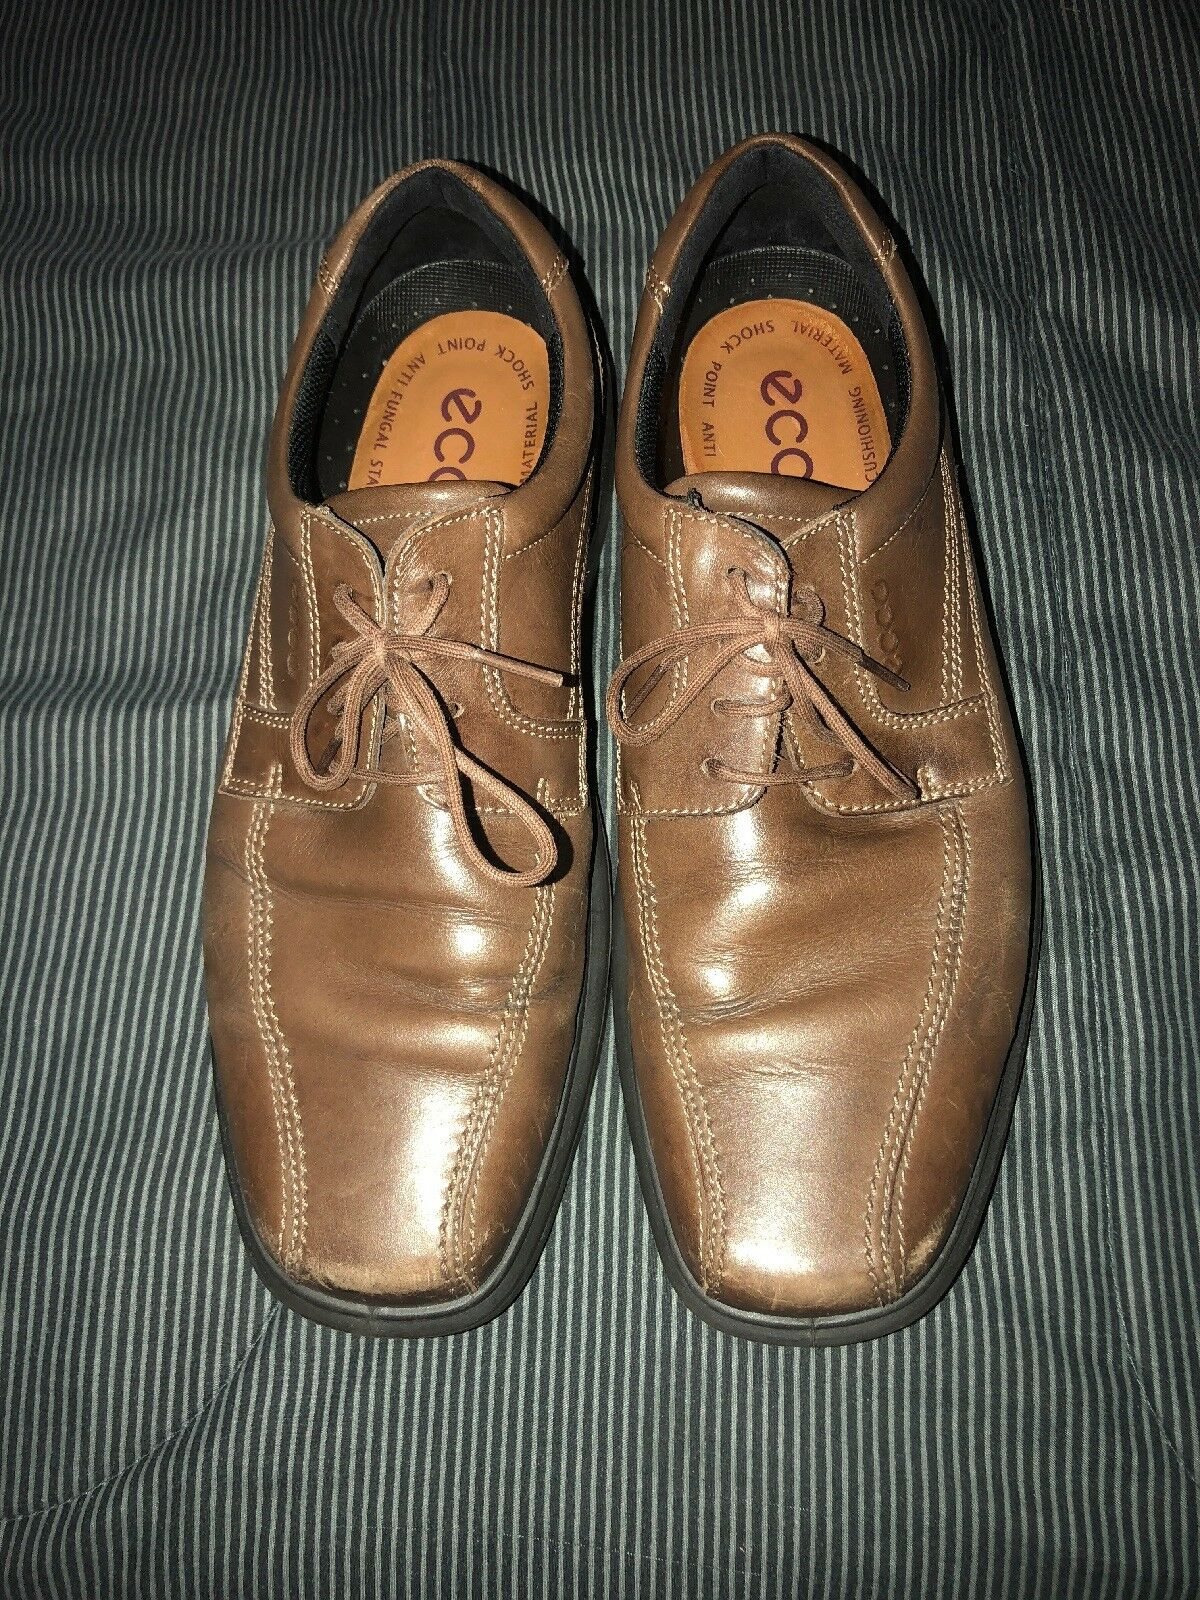 ECCO Square Bicycle Toe Mens Leather Dress shoes Oxfords Size US 10 10.5